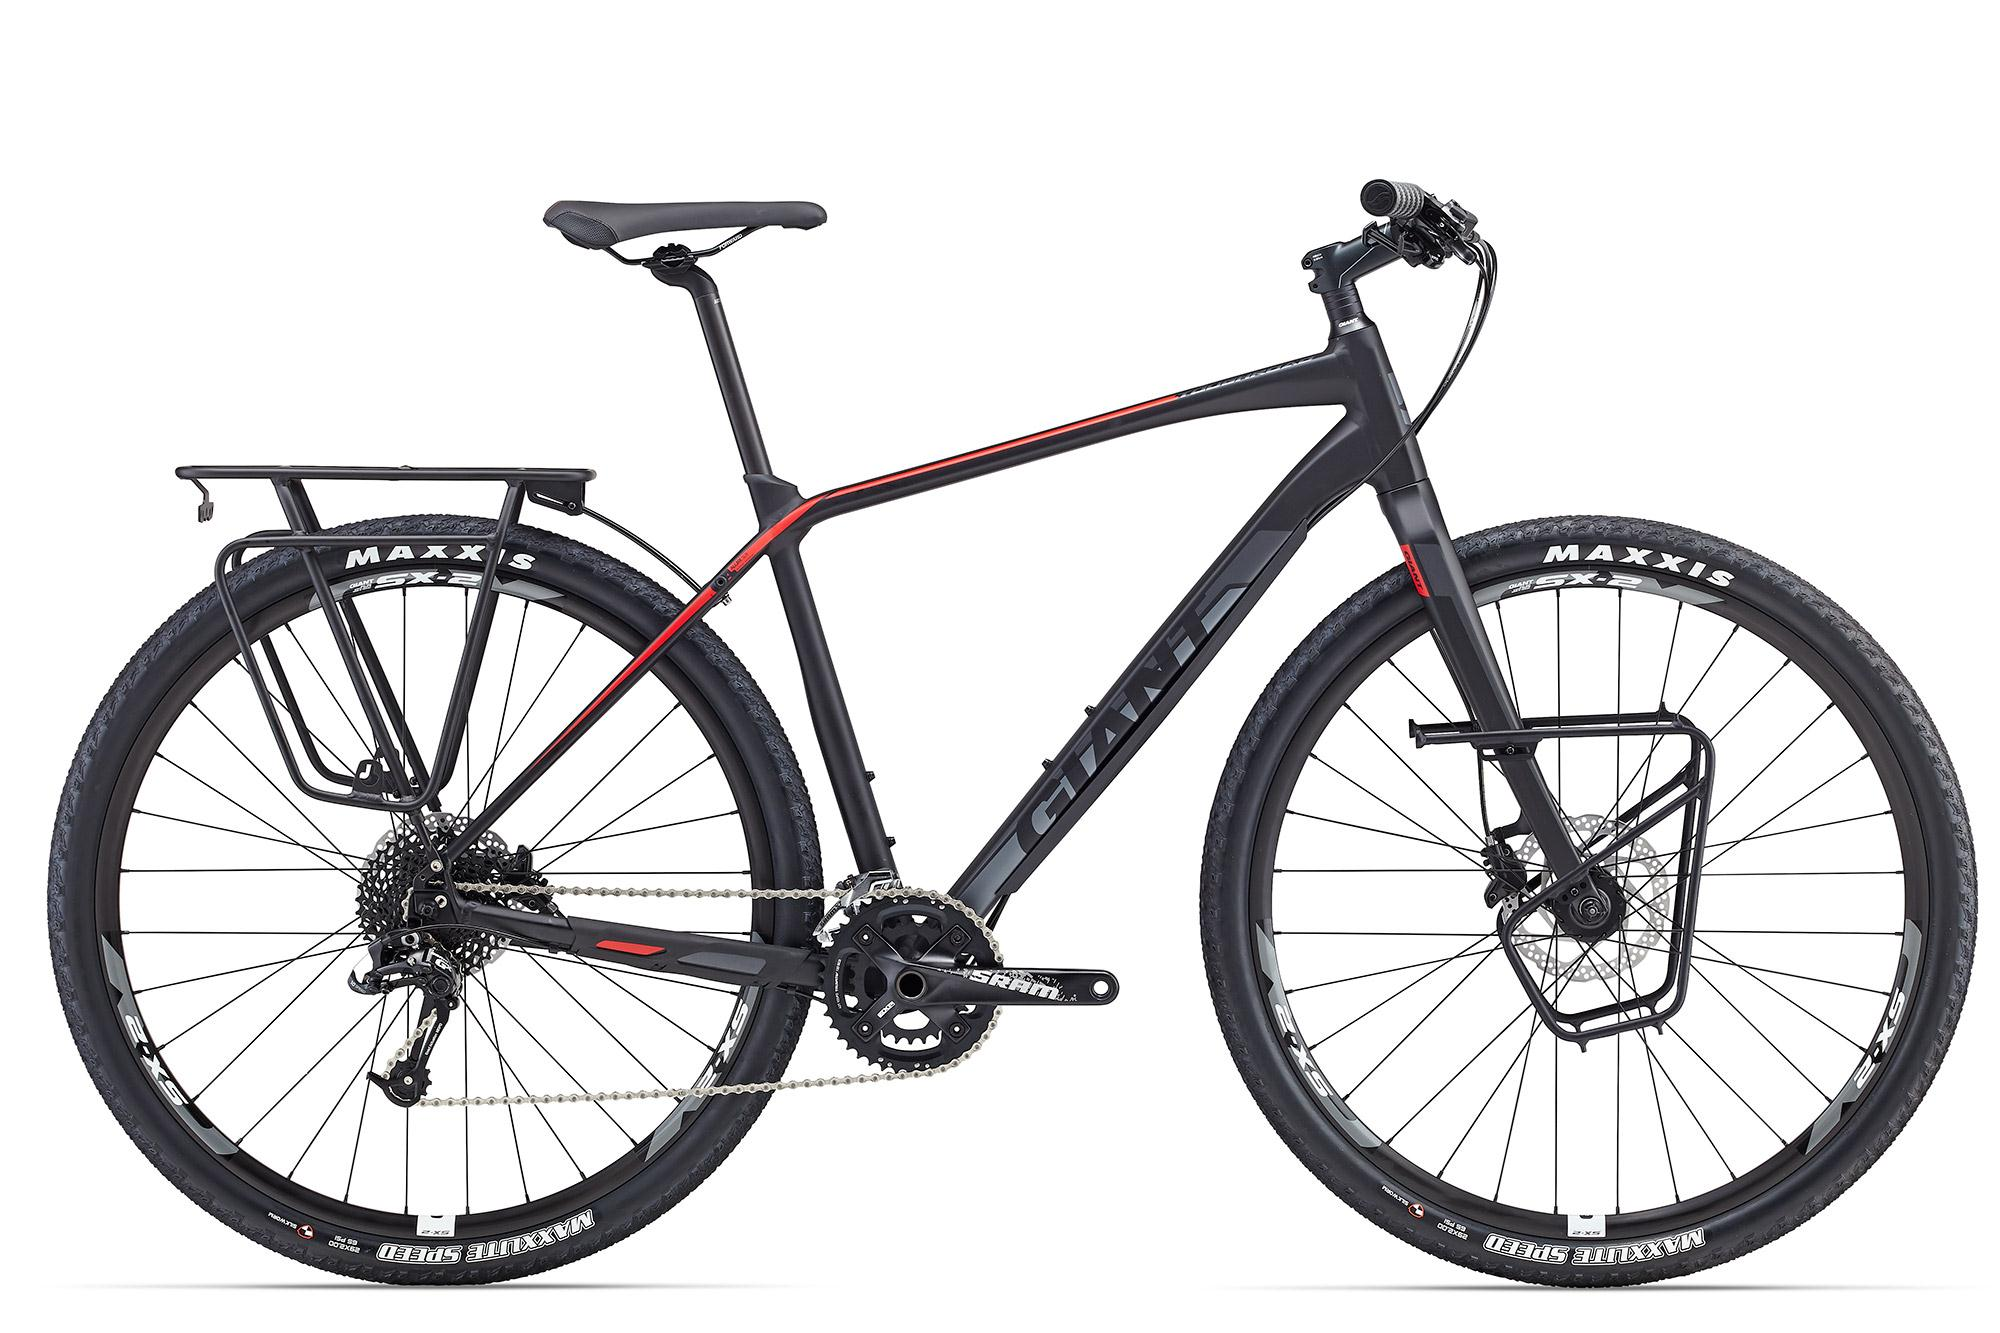 The New 2016 Giant Toughroad Touring Bikes Cyclingabout